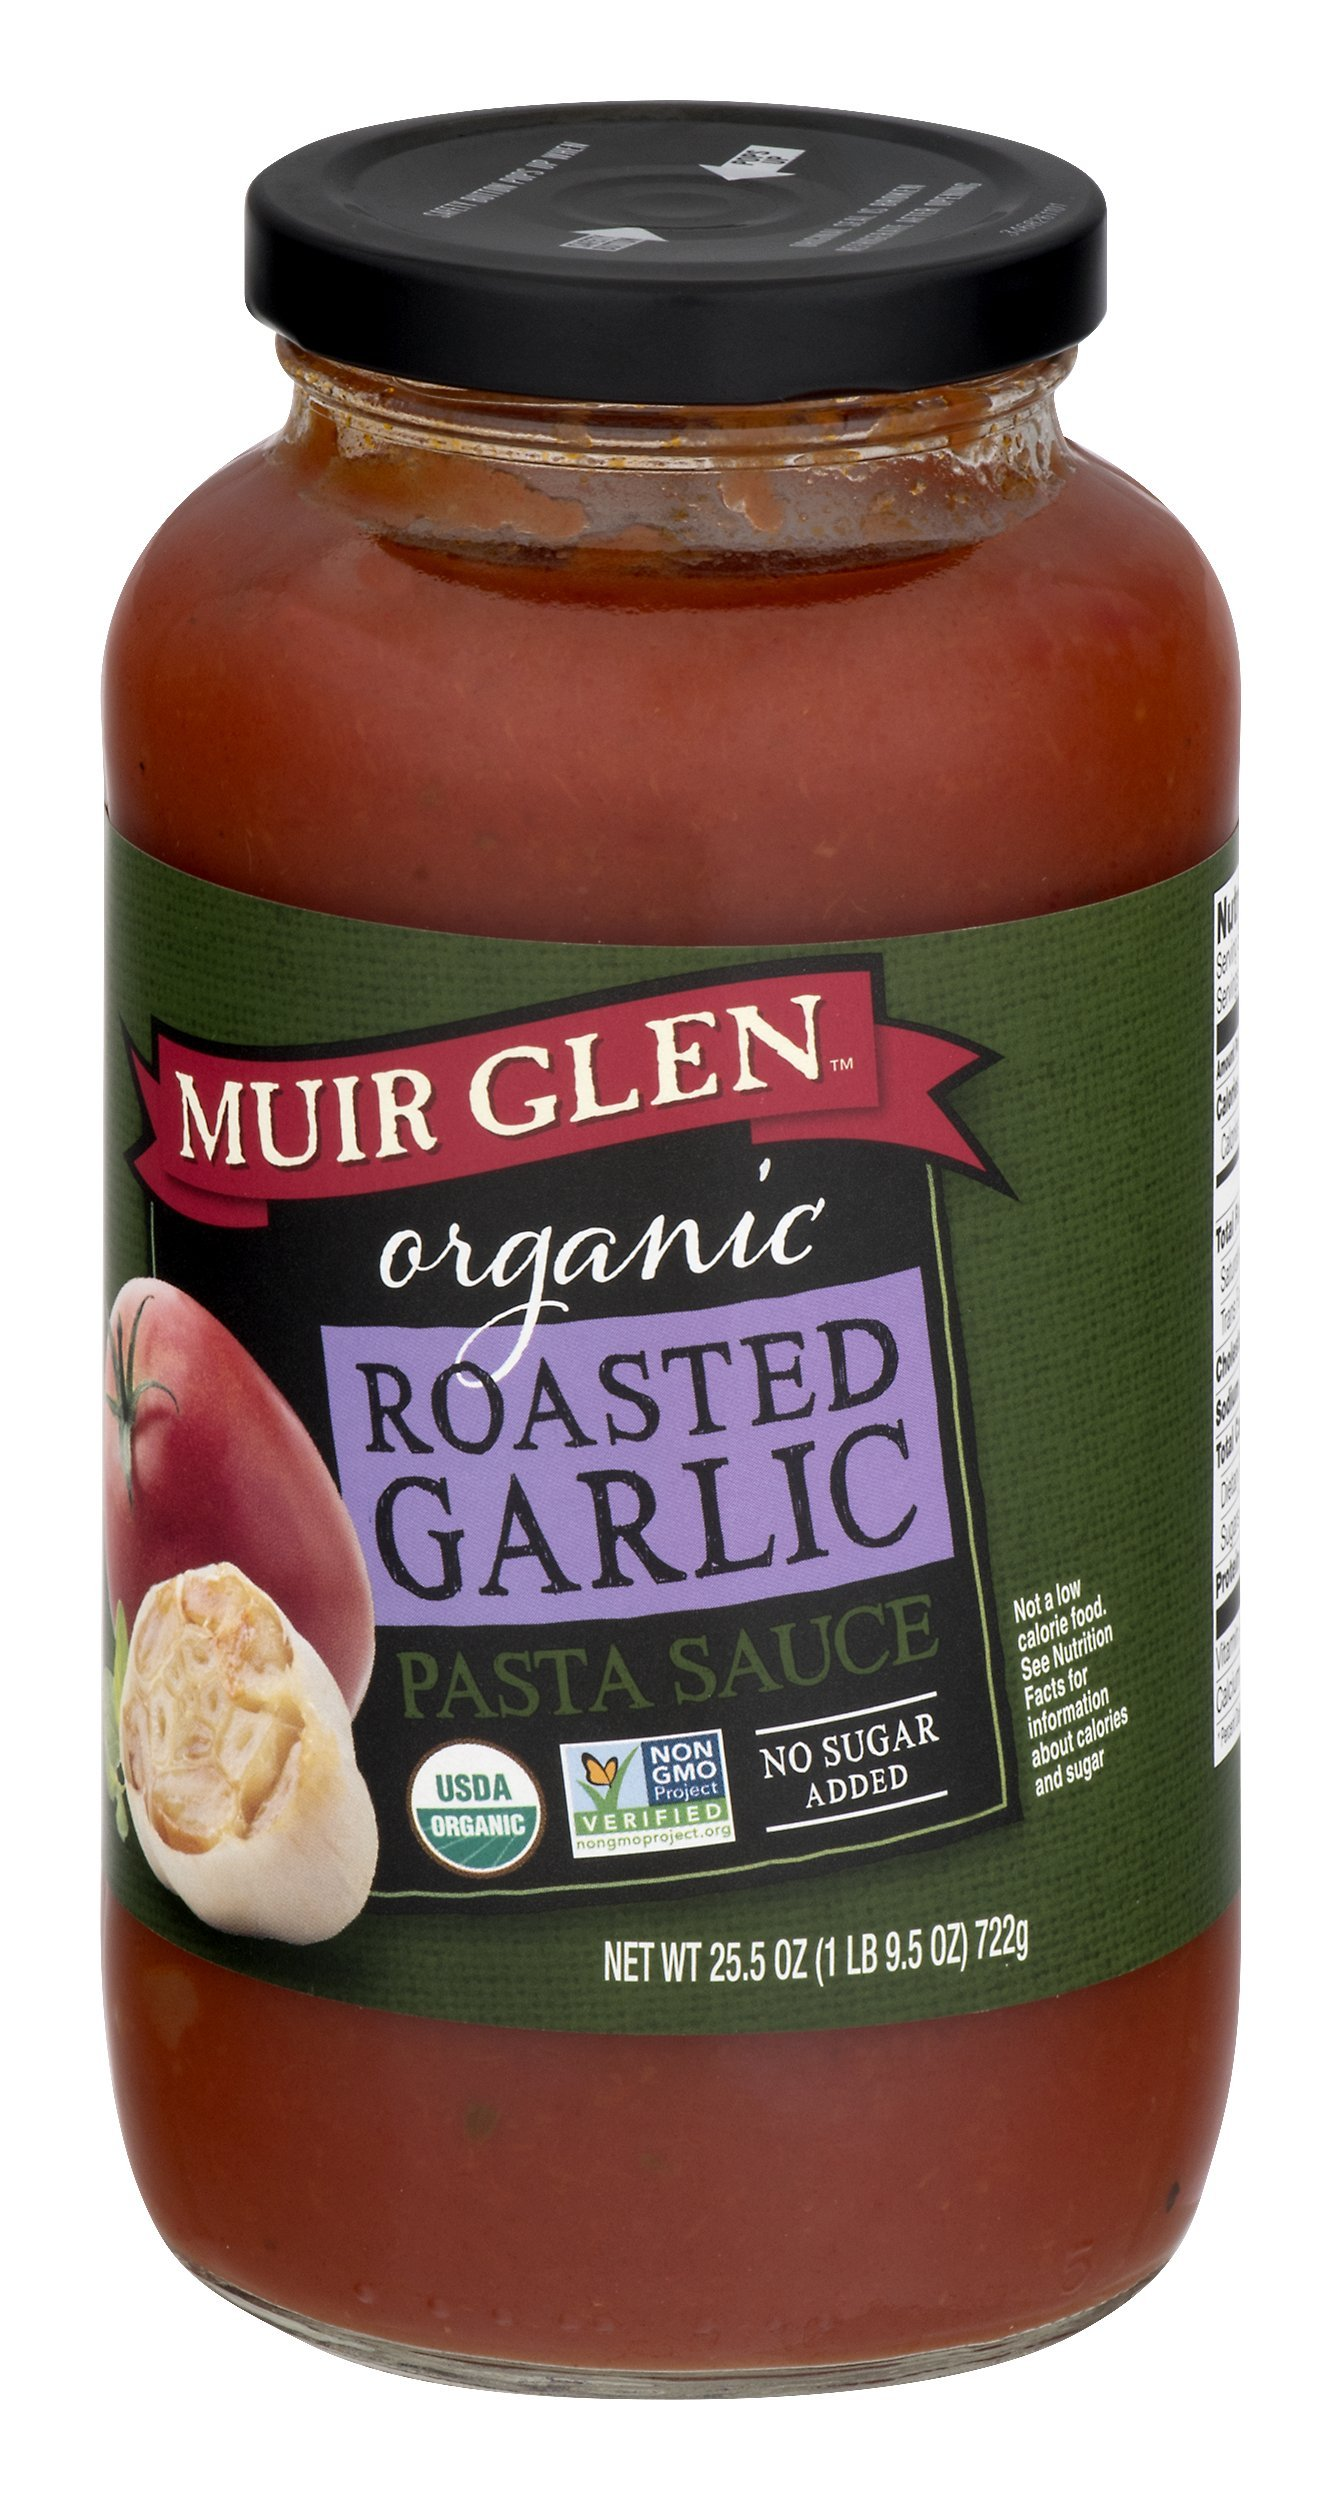 Muir Glen Organic Roasted Garlic Pasta Sauce, Fat Free, 25.5 oz